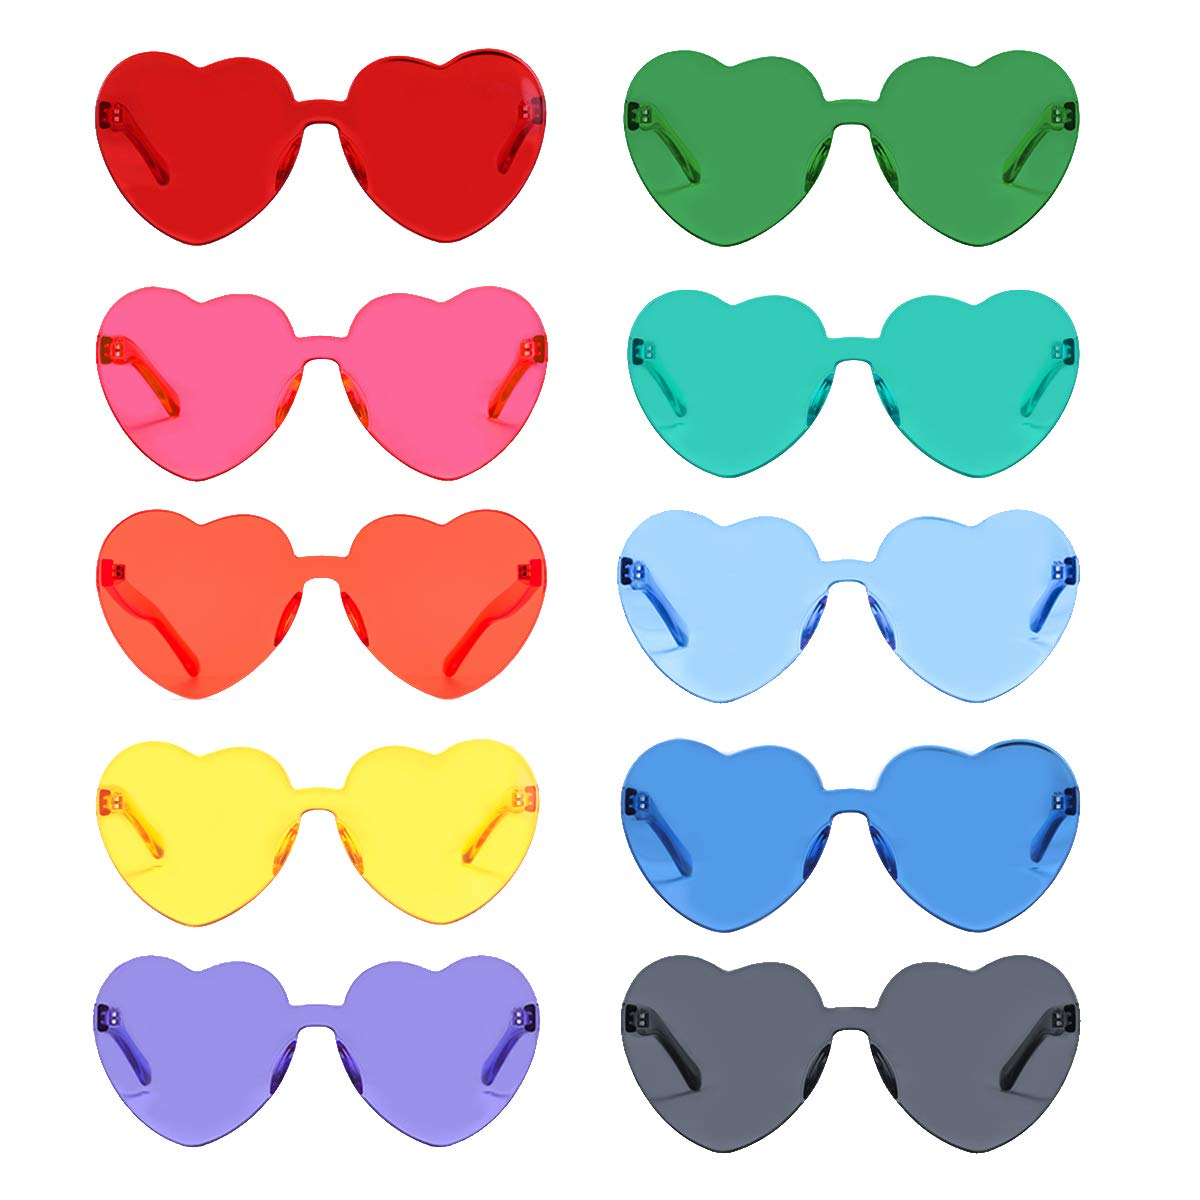 One Piece Heart Shaped Rimless Sunglasses Transparent Candy Color Eyewear (10 Pack) by RTBOFY